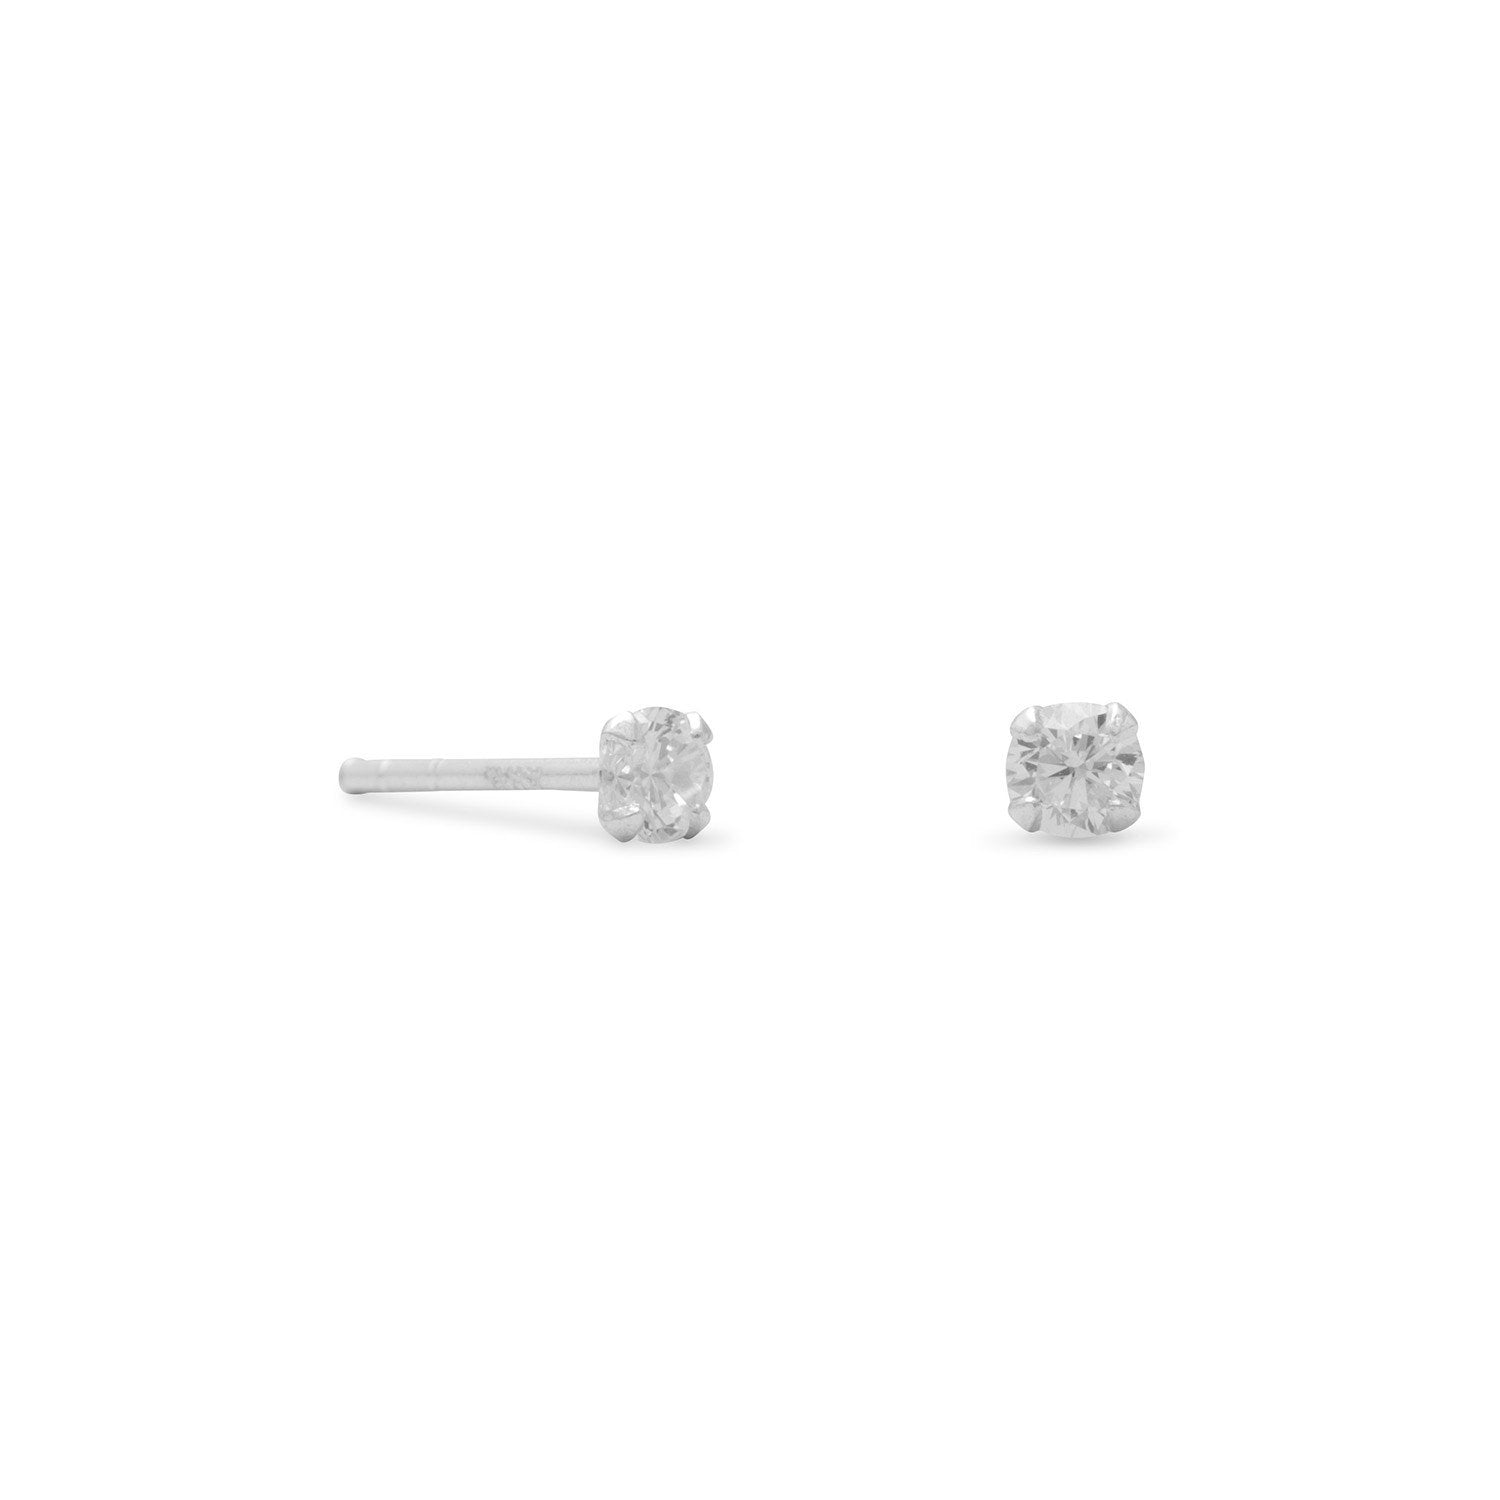 925 Sterling Silver 3mm CZ Stud Earrings